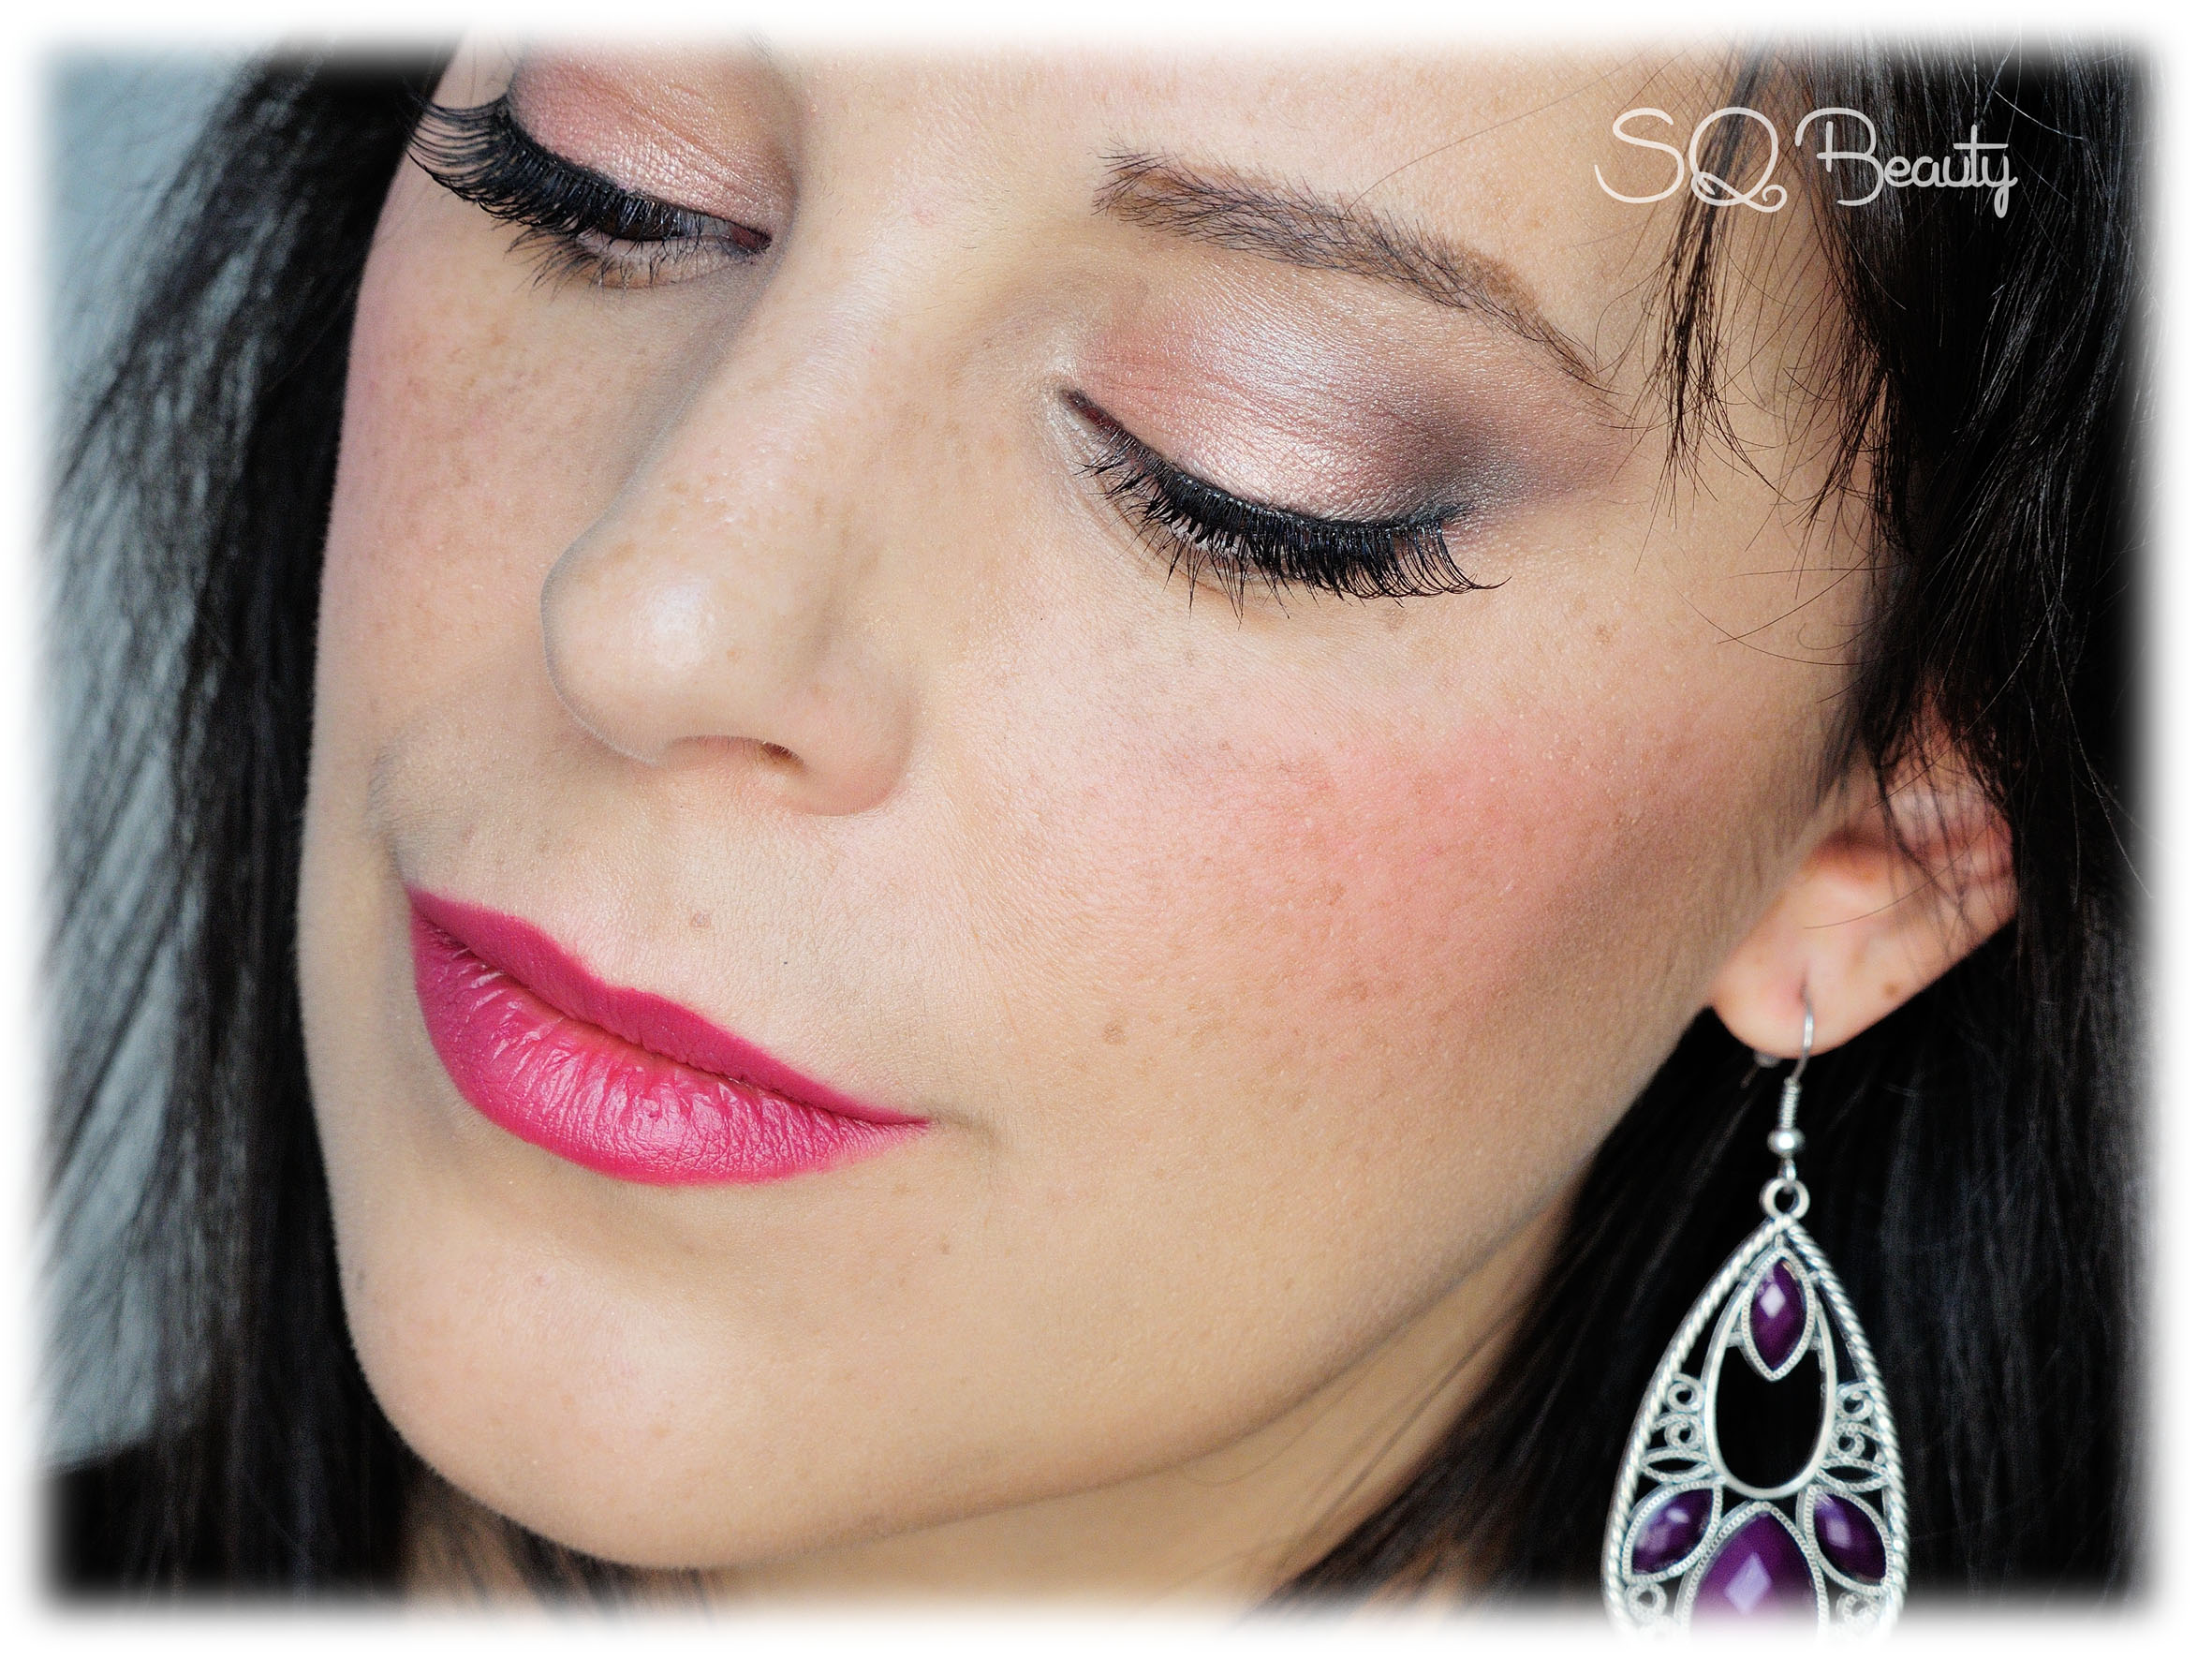 Maquillaje fresco Katy perry Unconditionally makeup Silvia Quiros